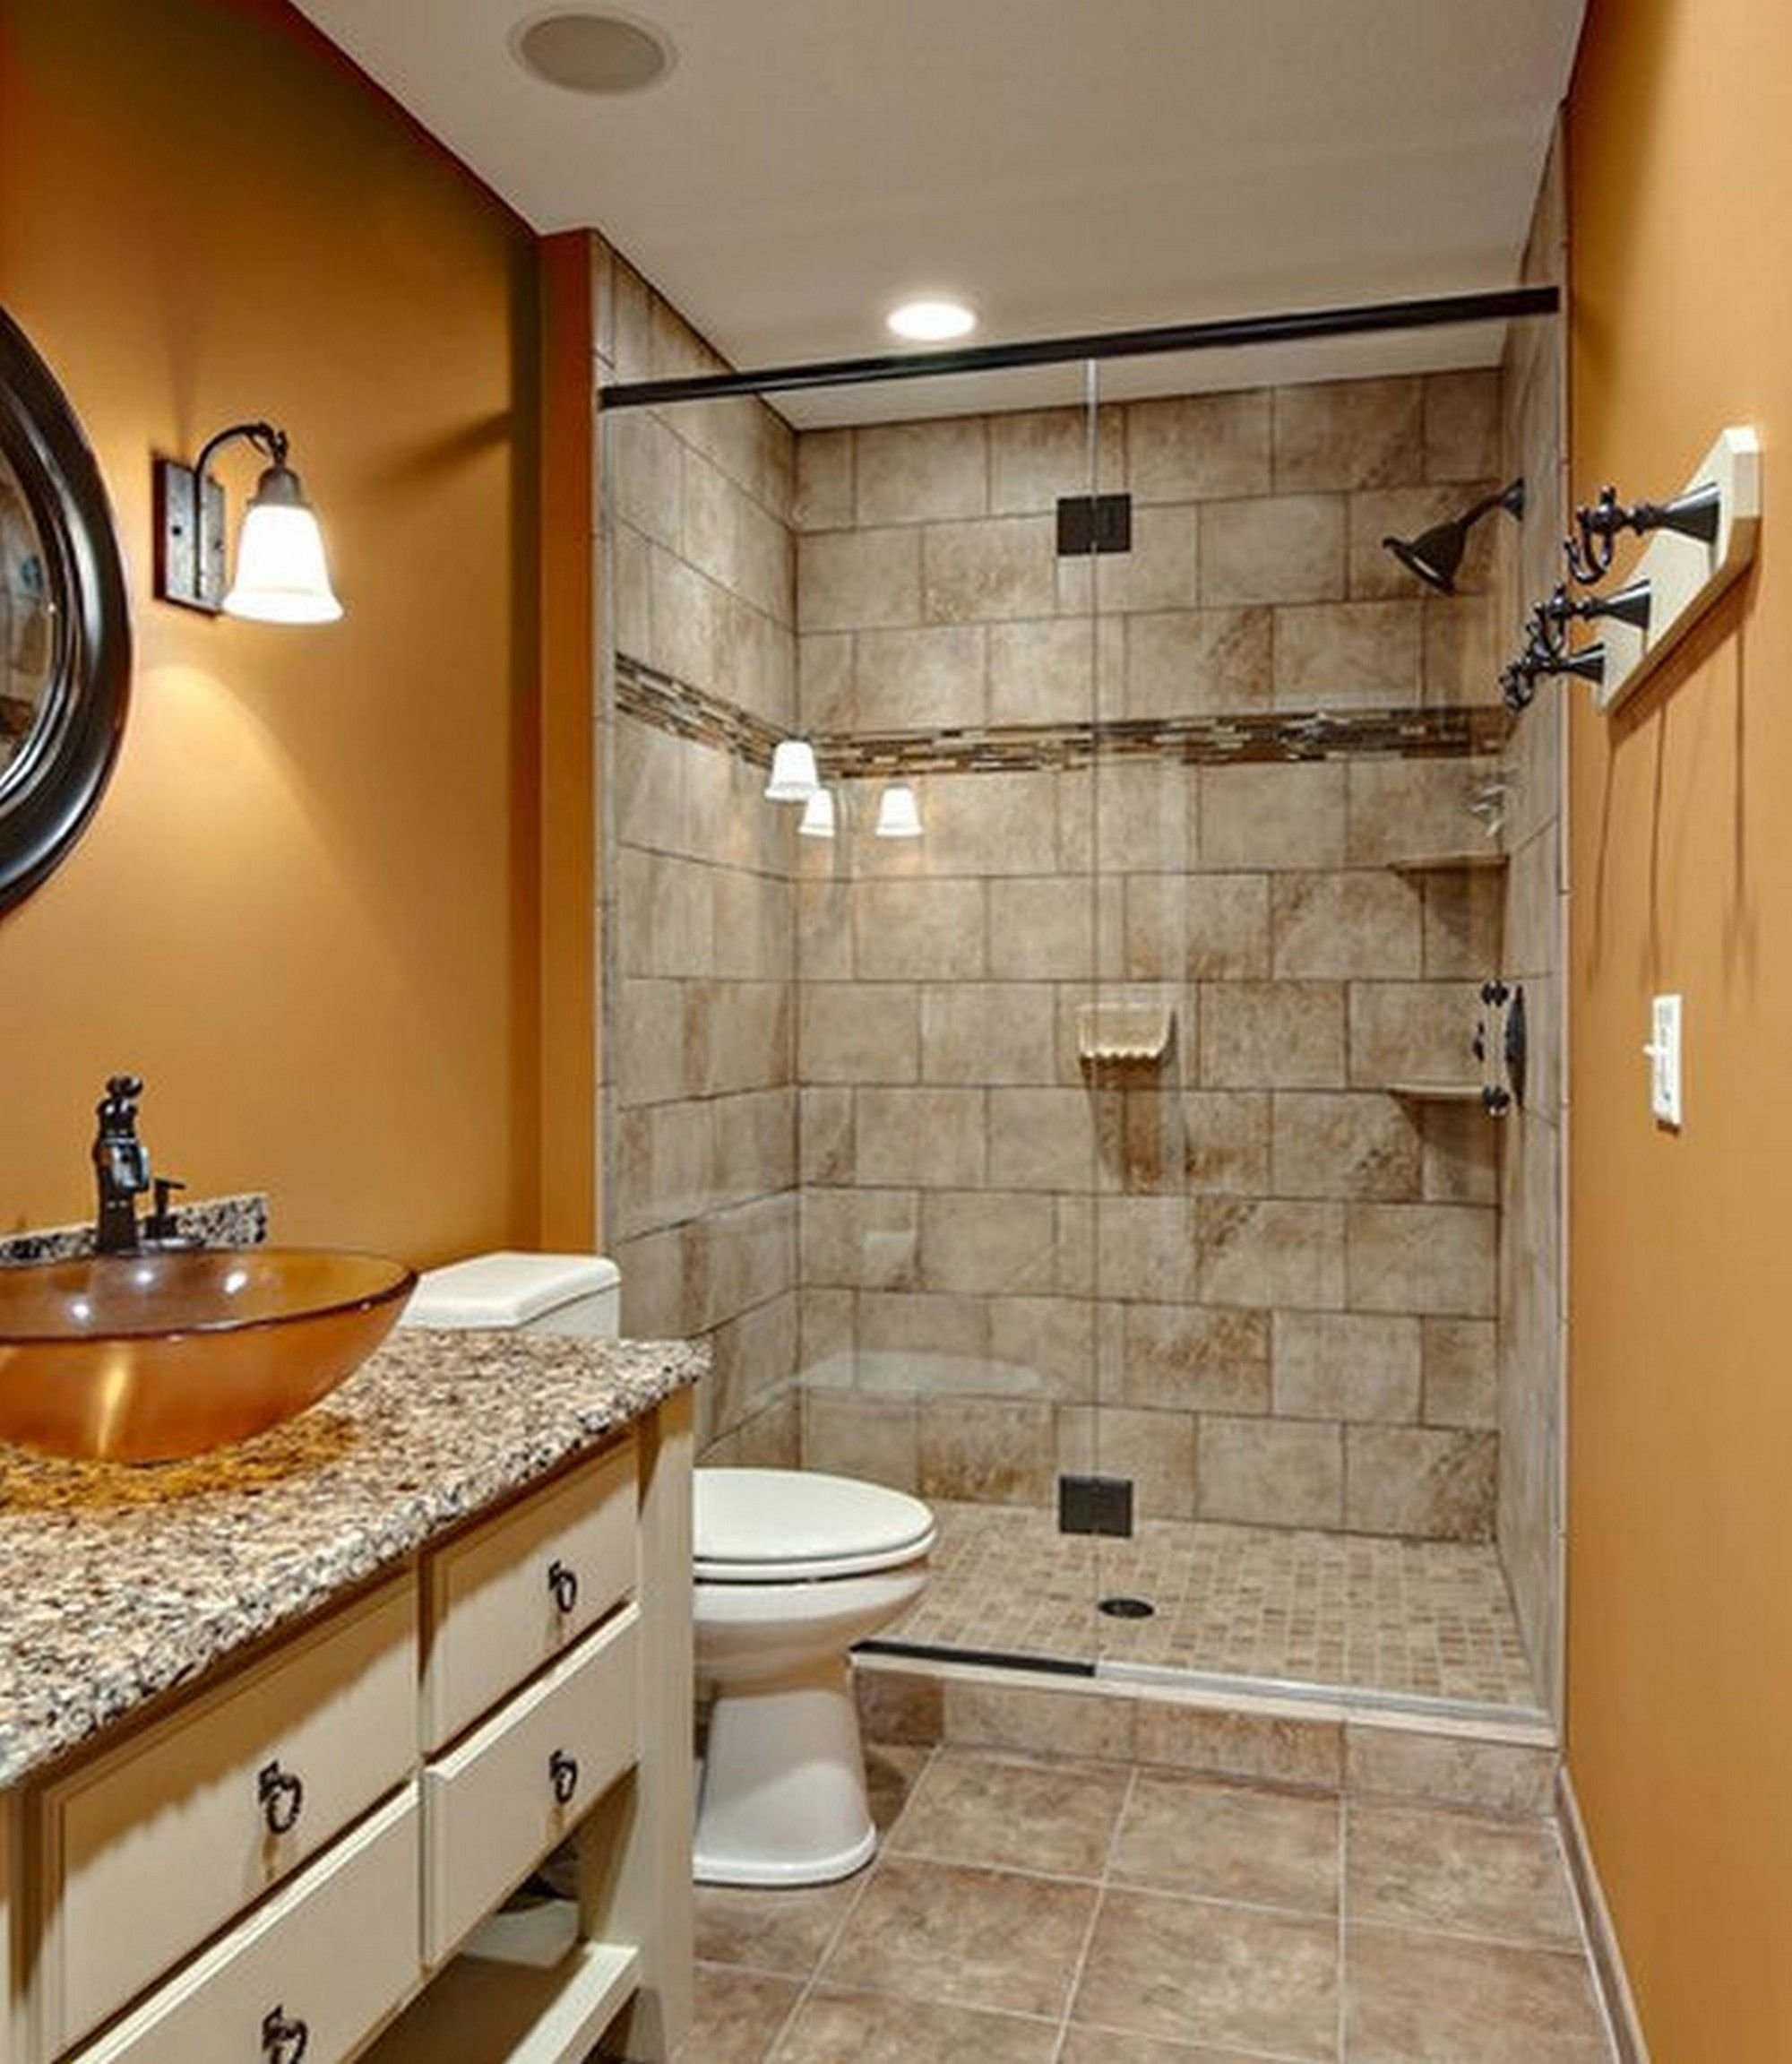 10 Attractive Walk In Shower Remodel Ideas modern bathroom design ideas with walk in shower bathroom designs 1 2020